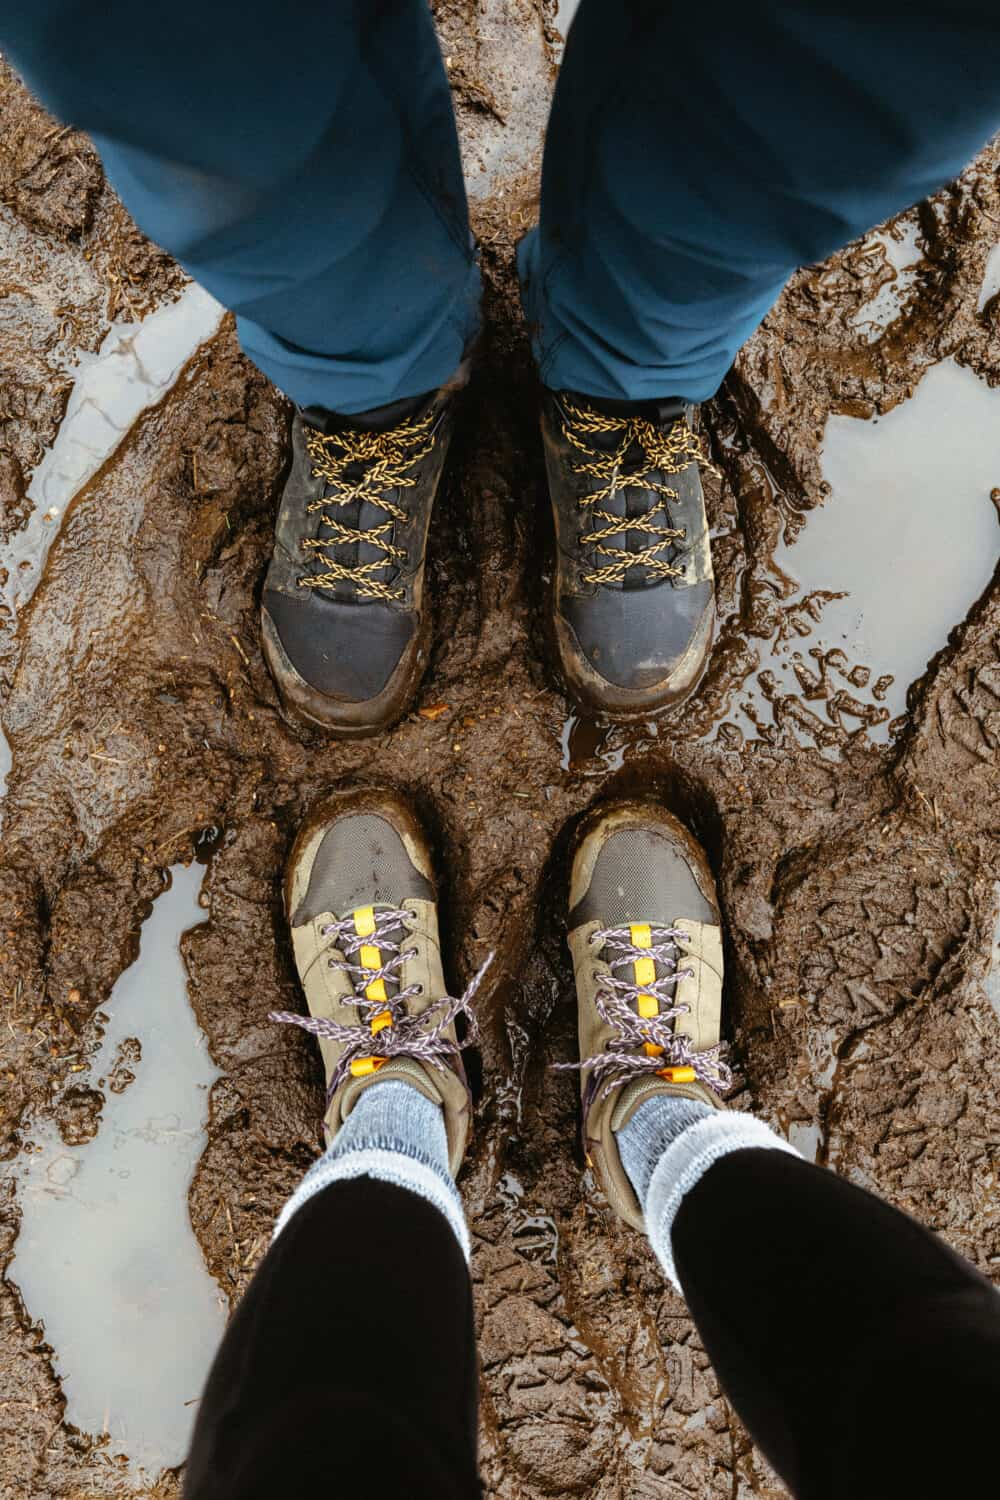 A pair of Muddy Shoes